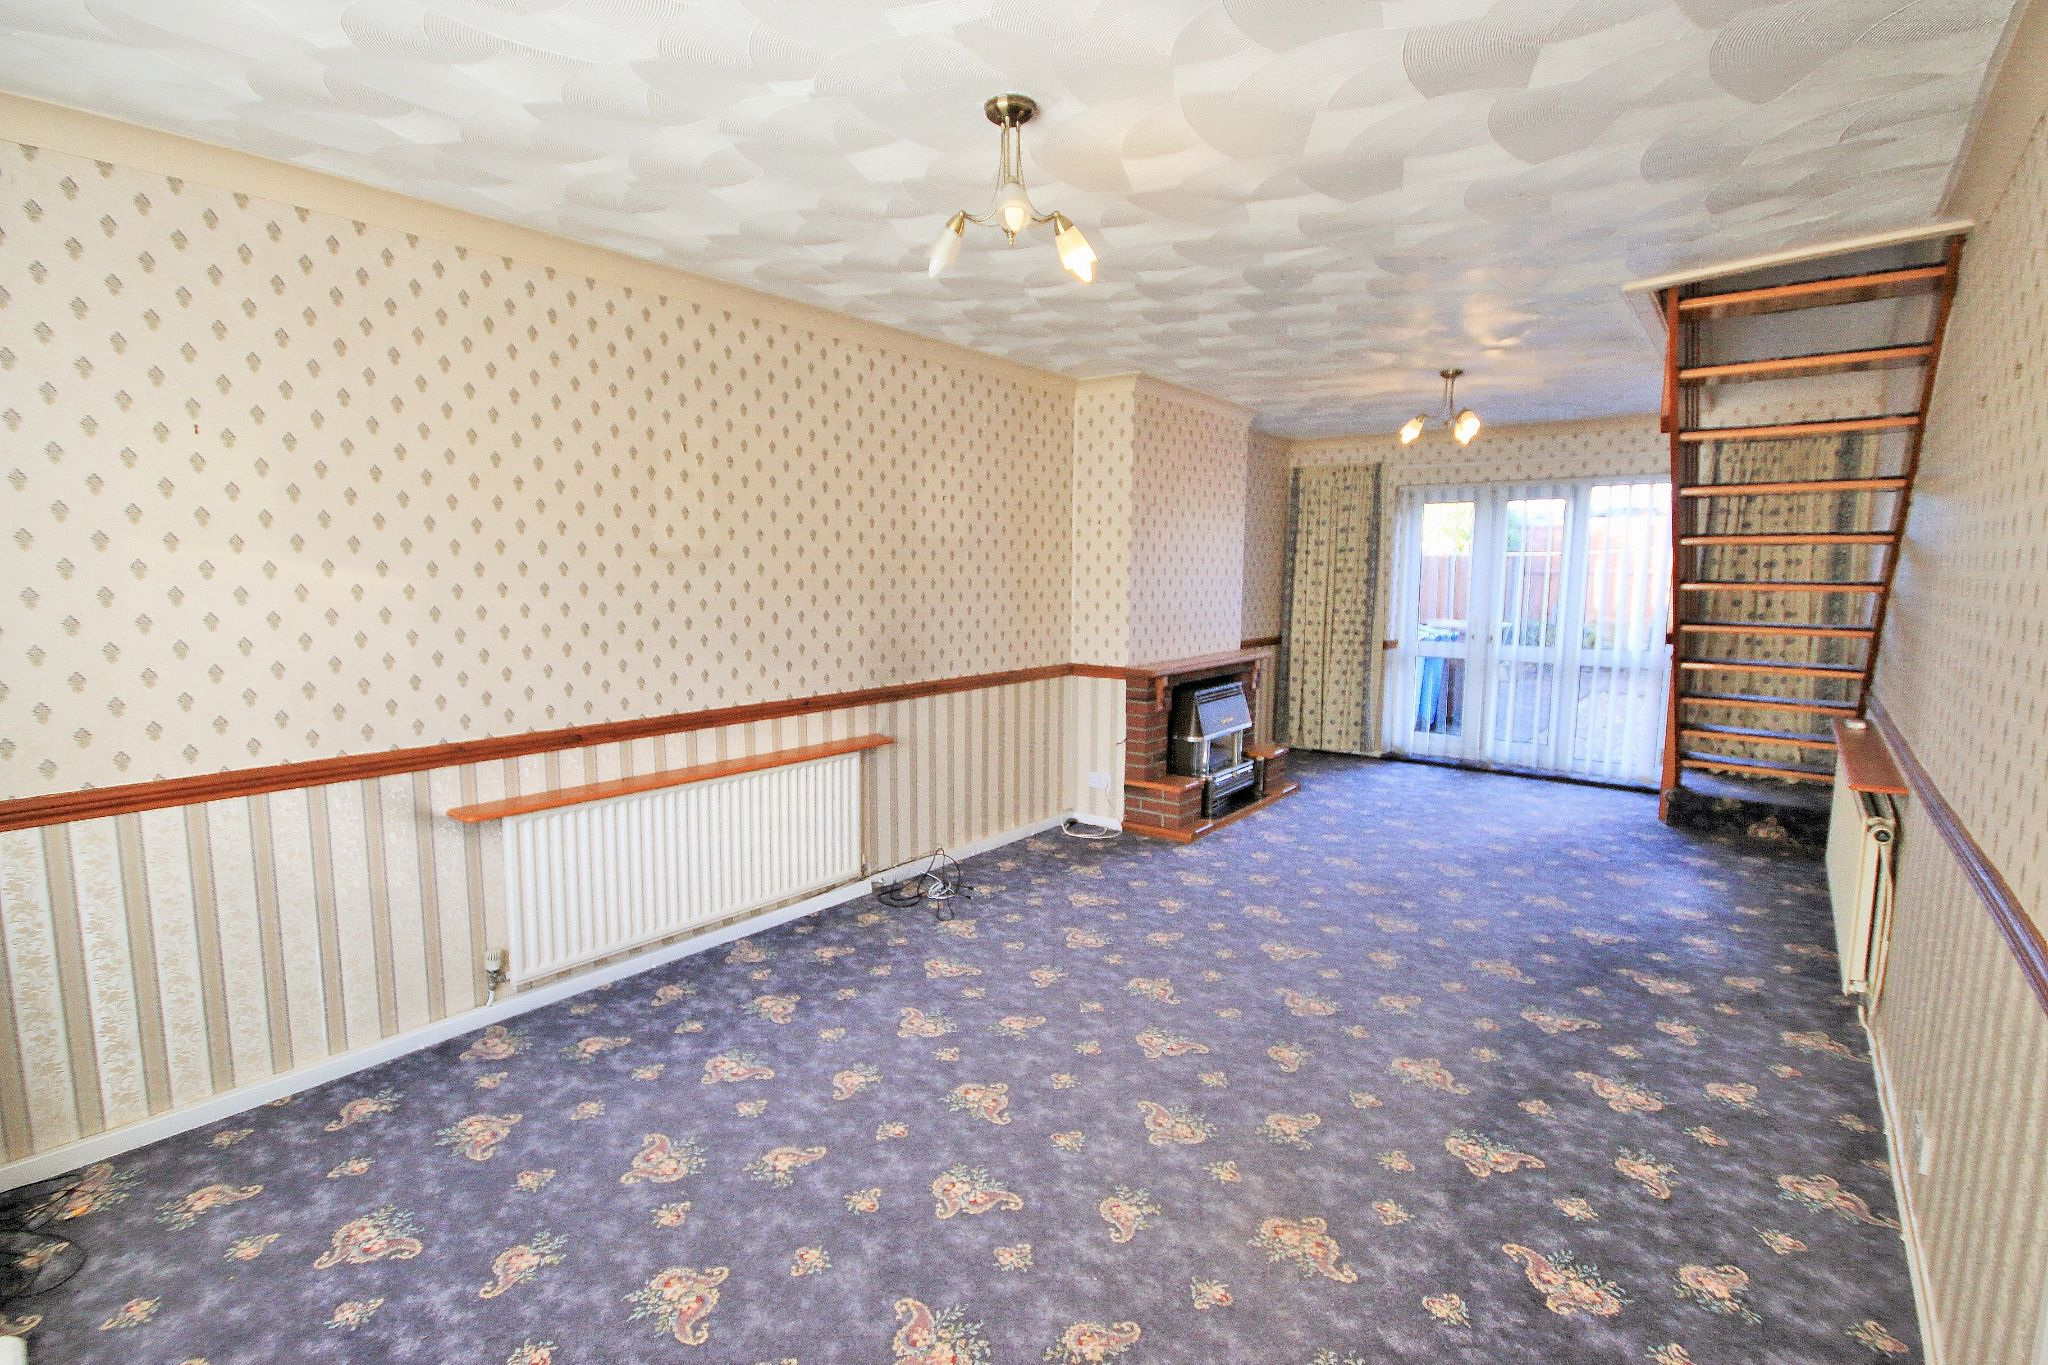 2 Bedroom Semi-detached Bungalow For Sale - Photograph 2